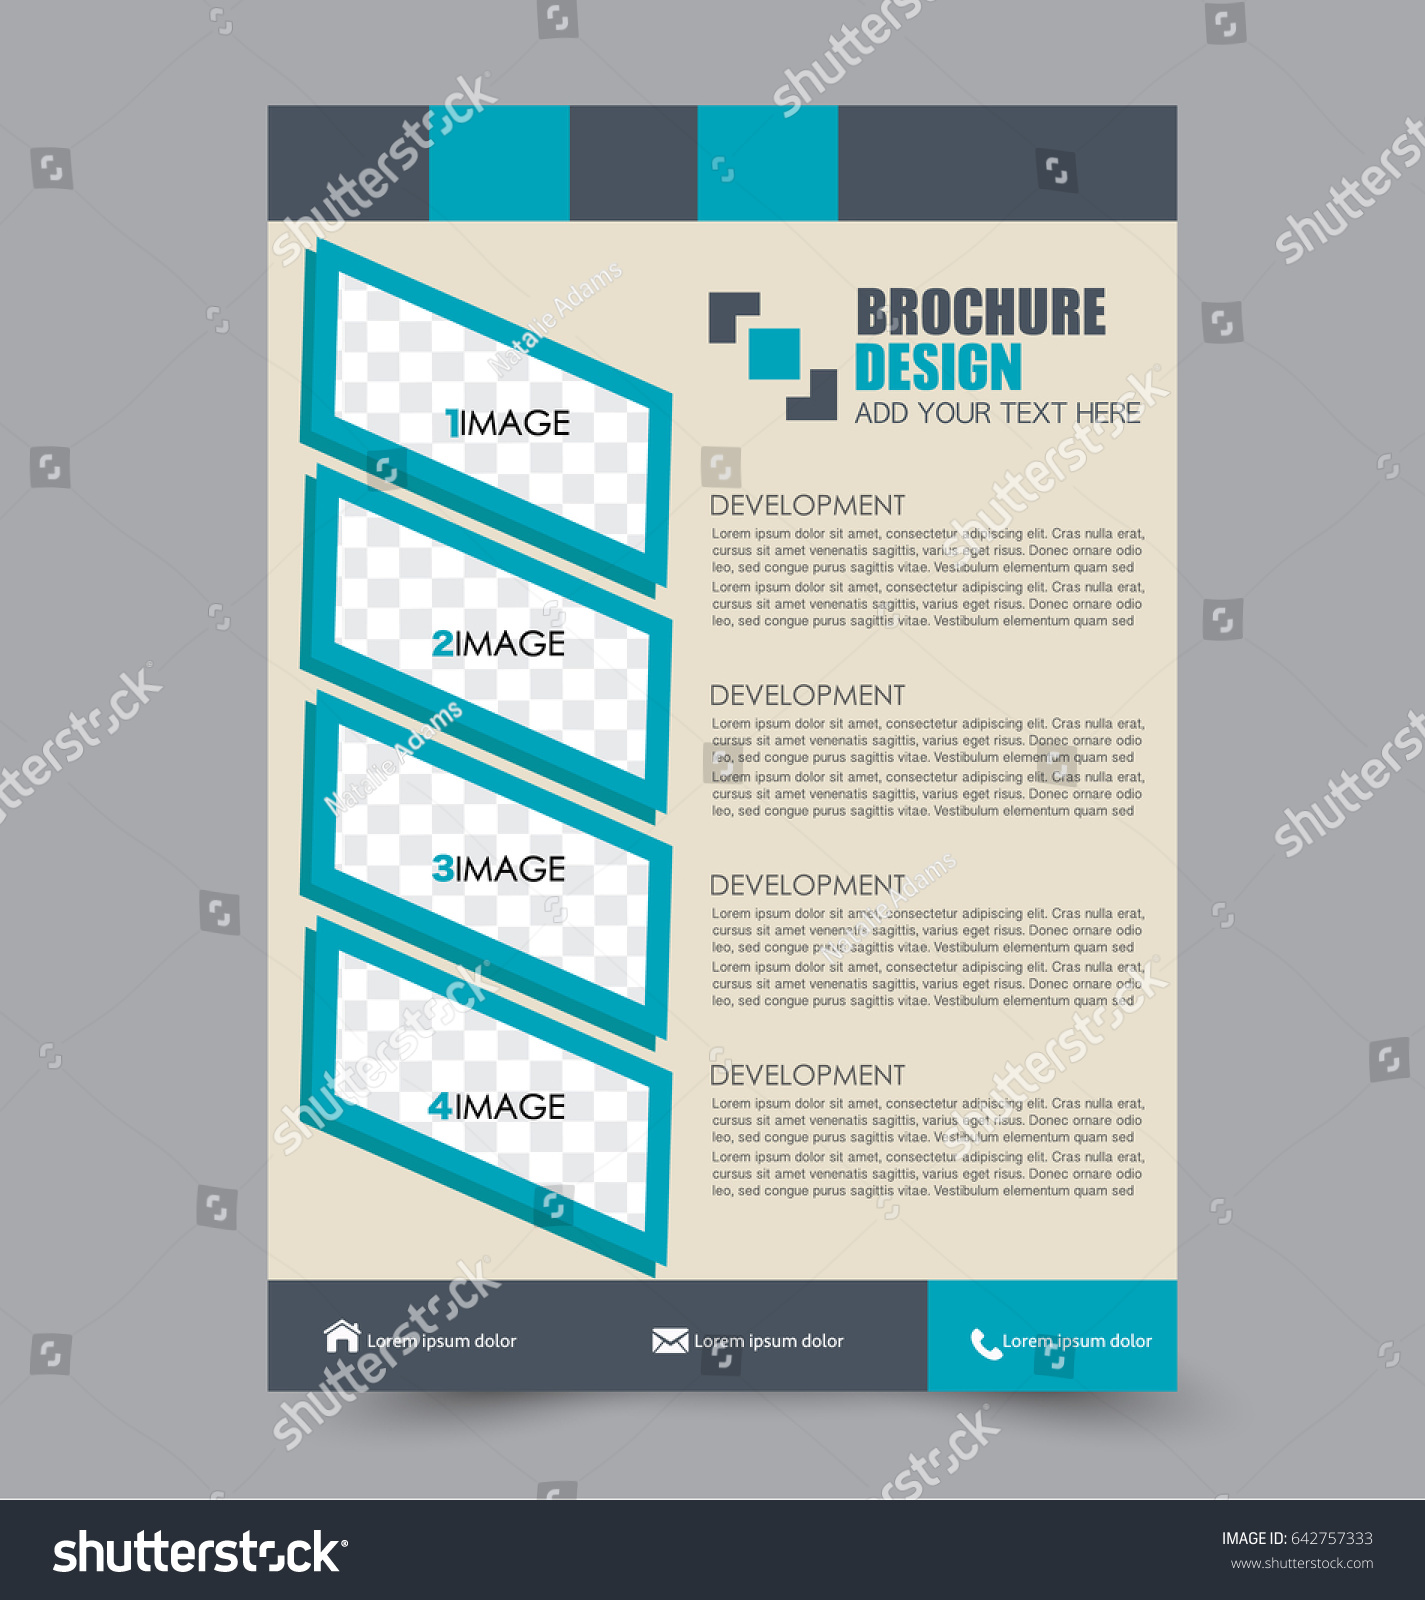 Flyer Template. BUsiness Brochure. Annual Report Cover. Editable A4 Poster  For Design,